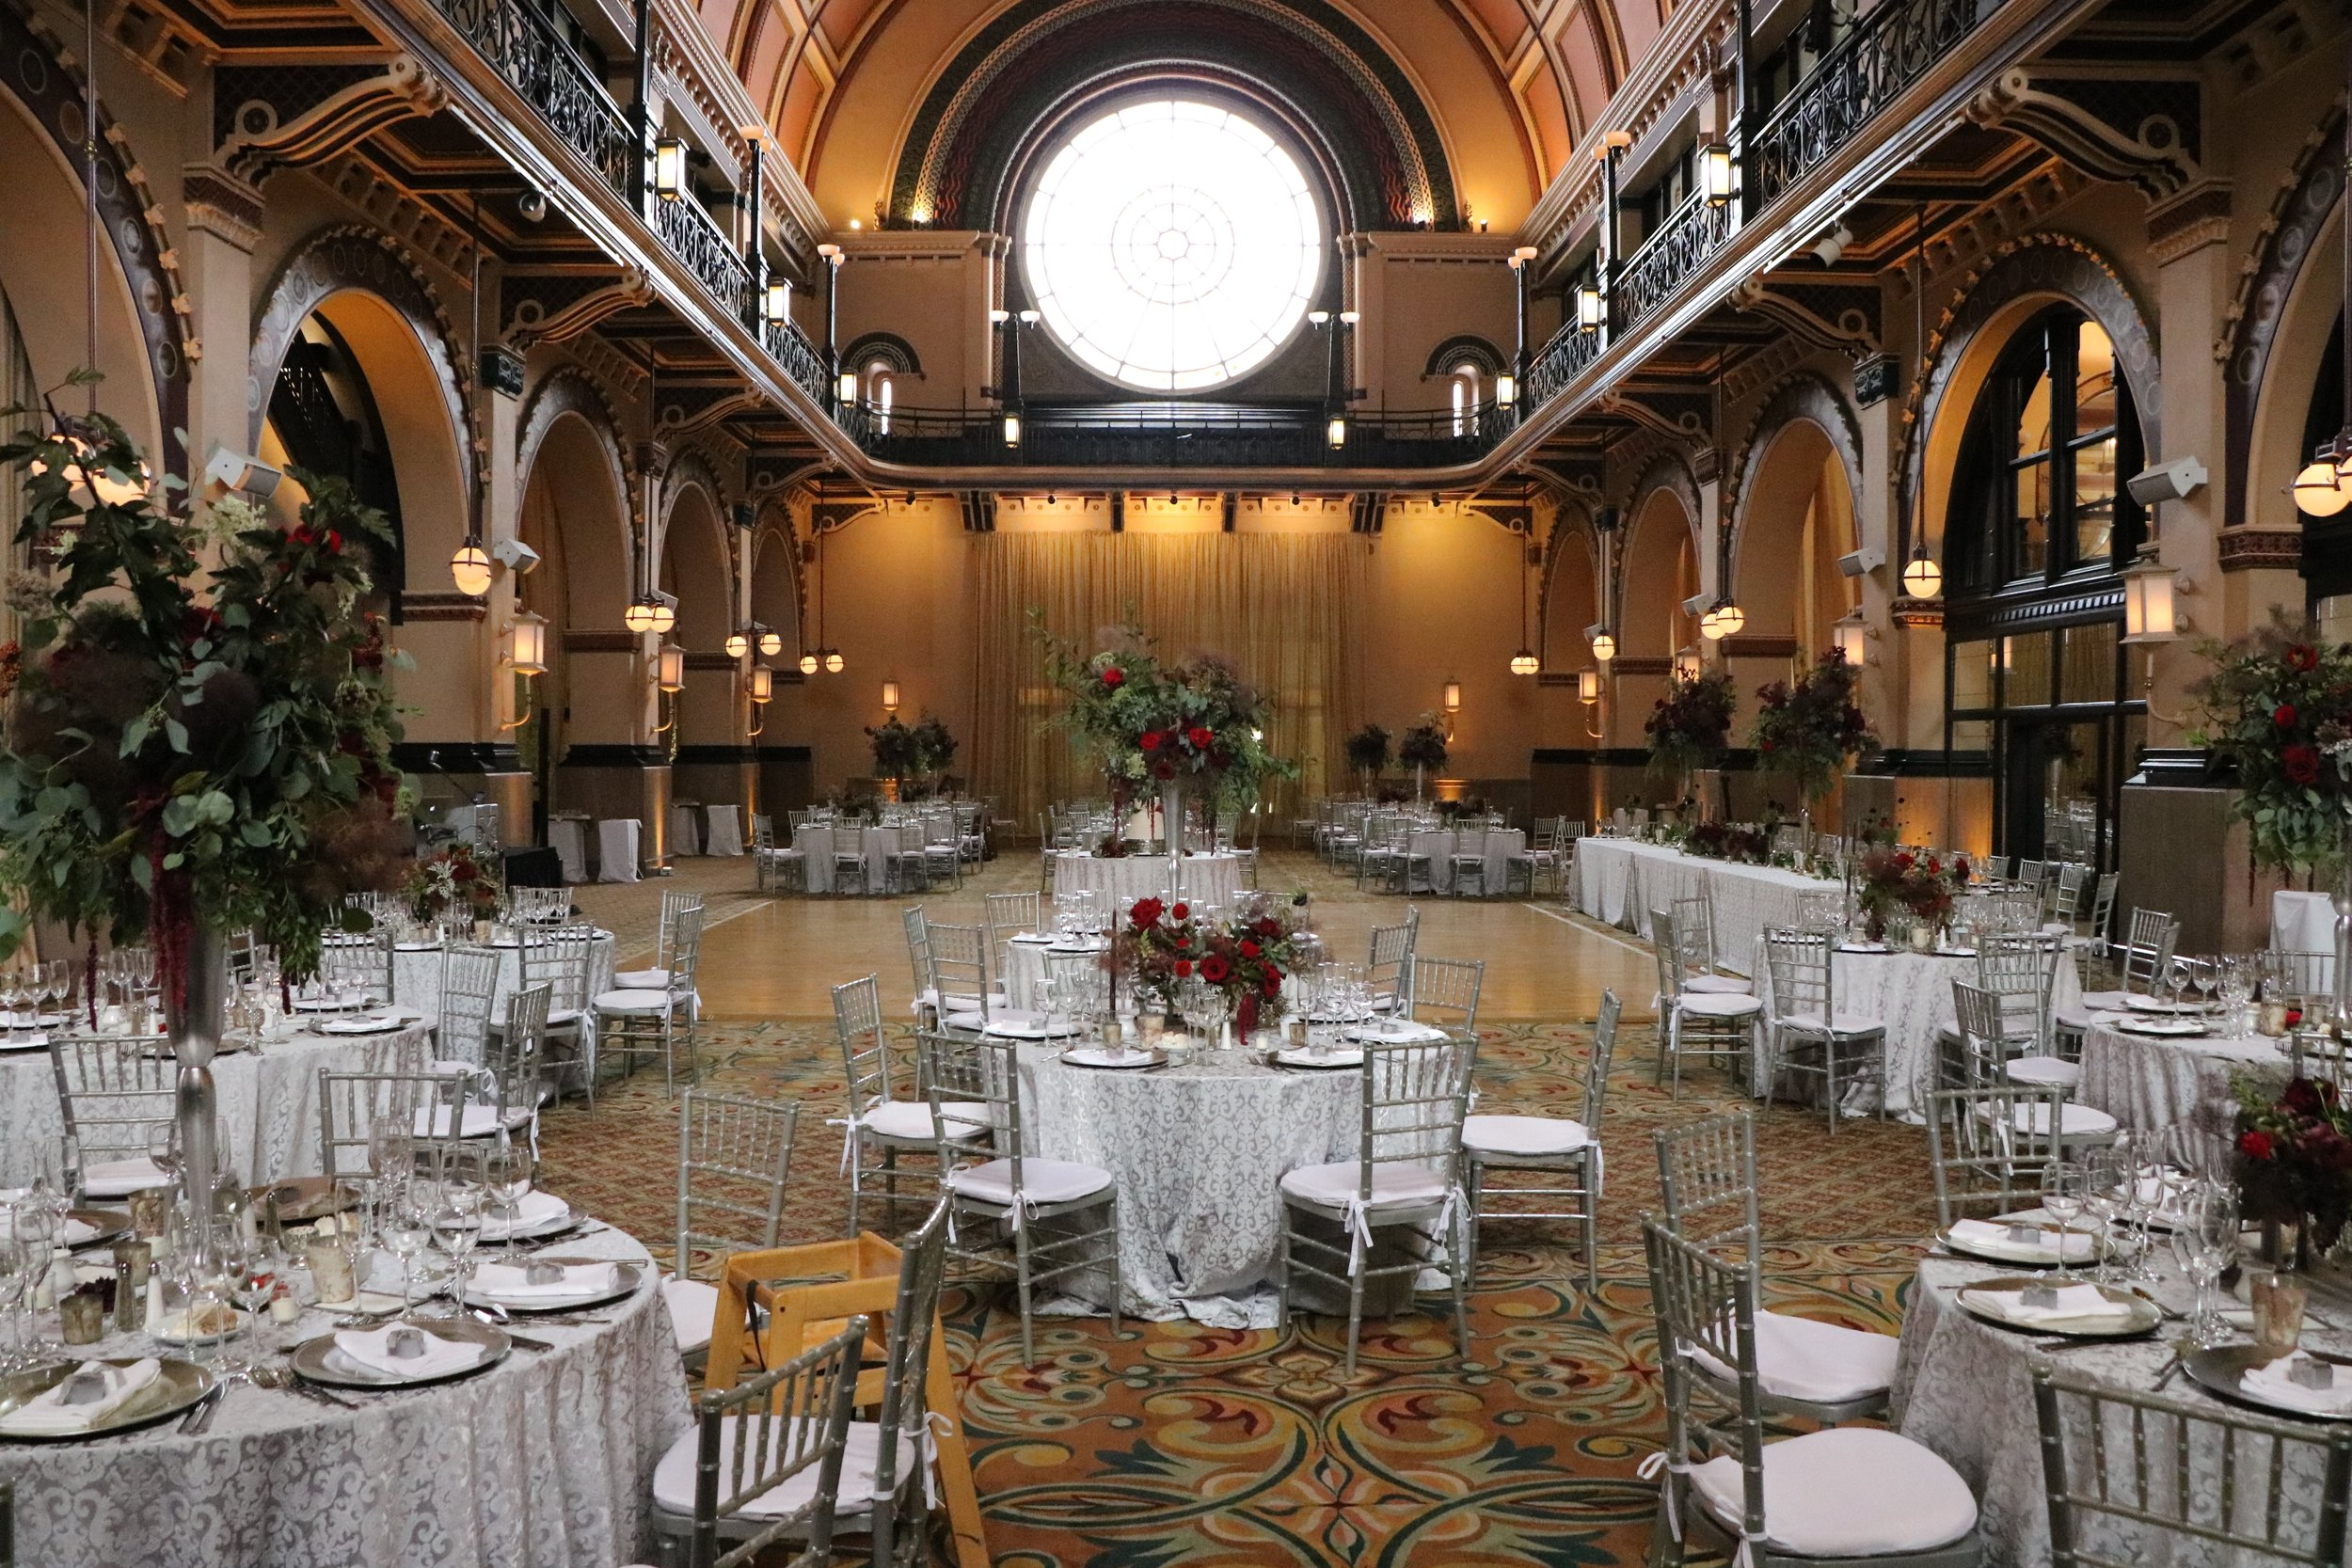 Union Station's Grand Hall just before it was revealed to guests